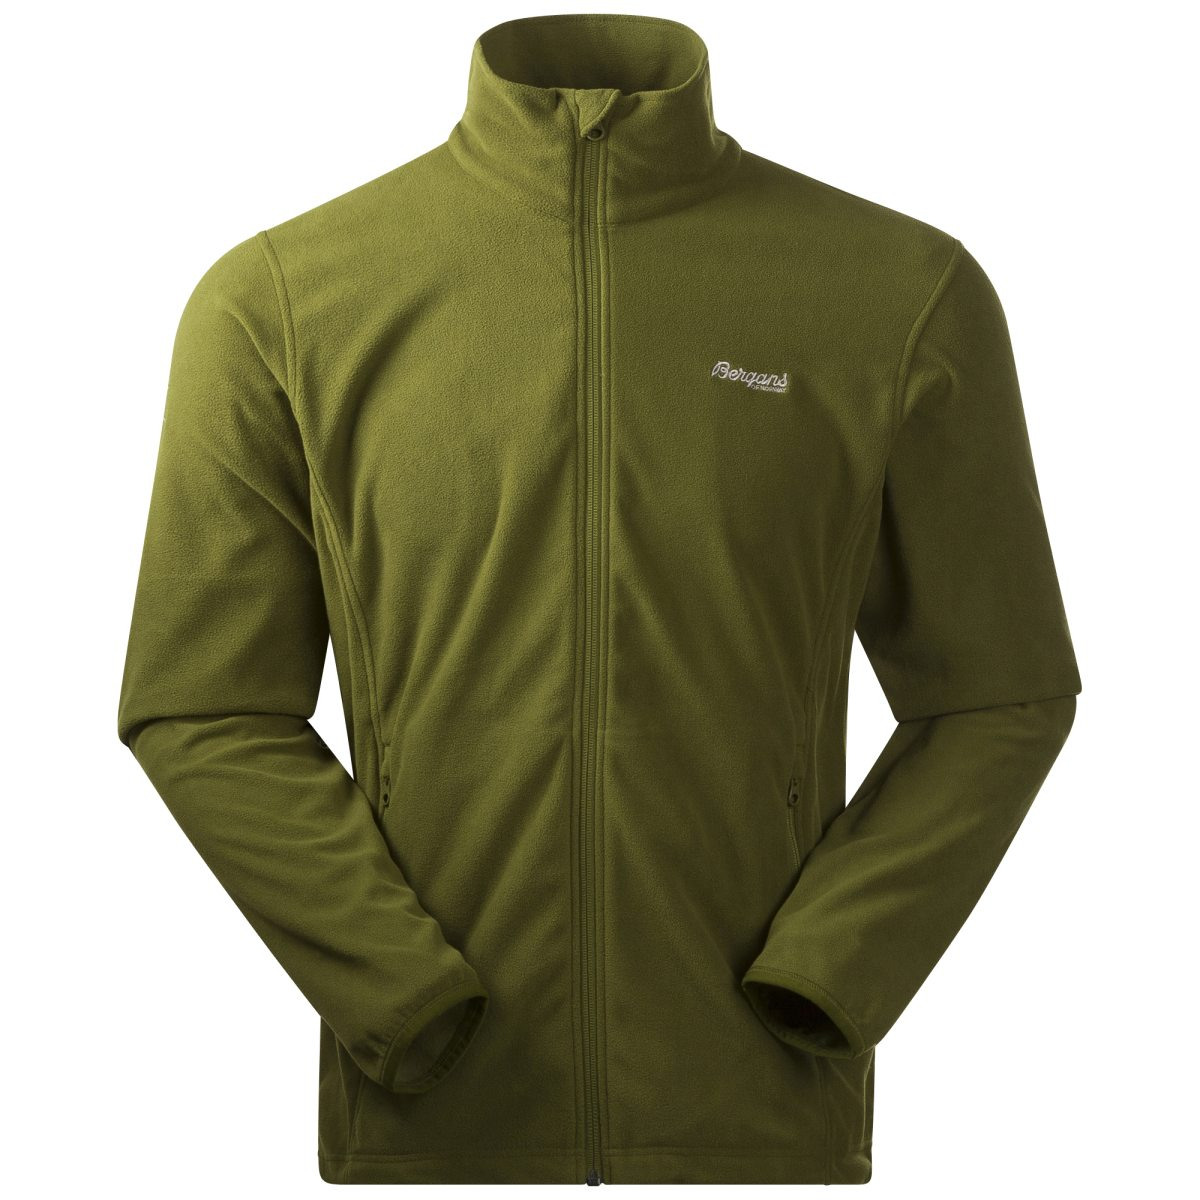 437e8ea49 Find every shop in the world selling hellyhansen shelter fleece ...